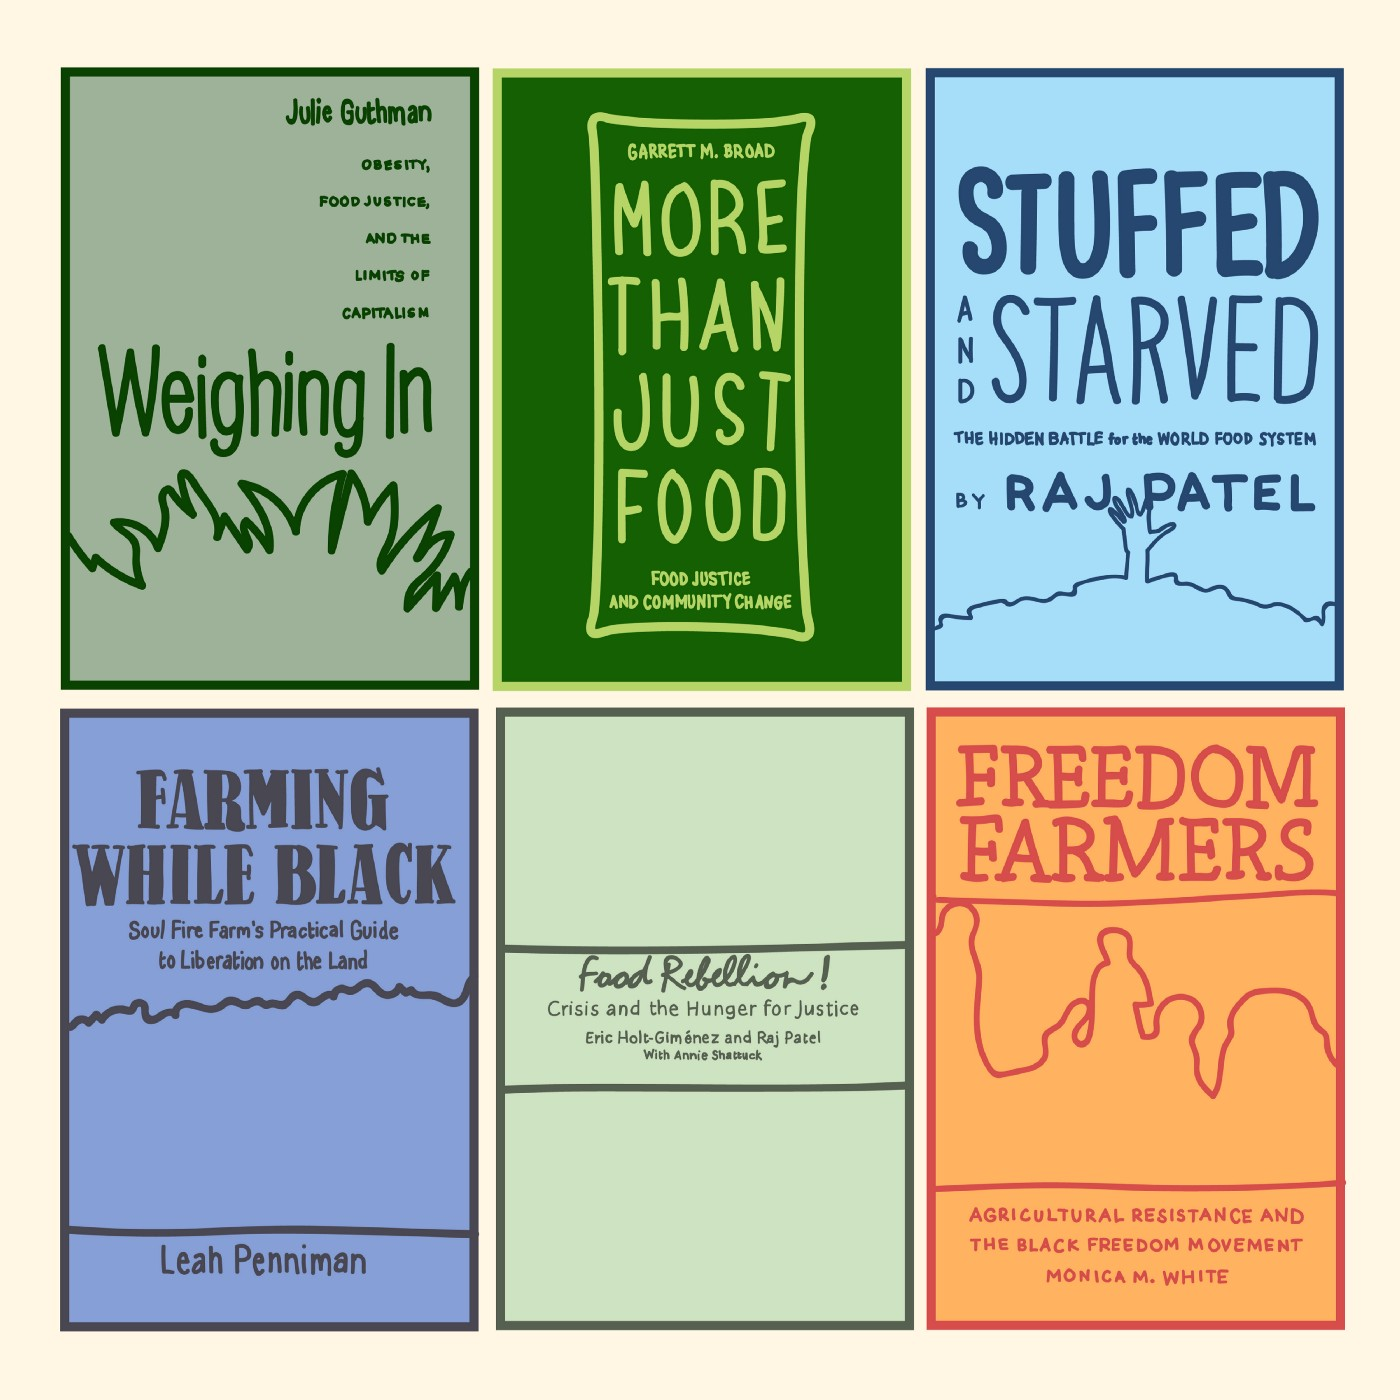 The covers of six books on the linked farming and food justice reading list, illustrated in simple, bright colors